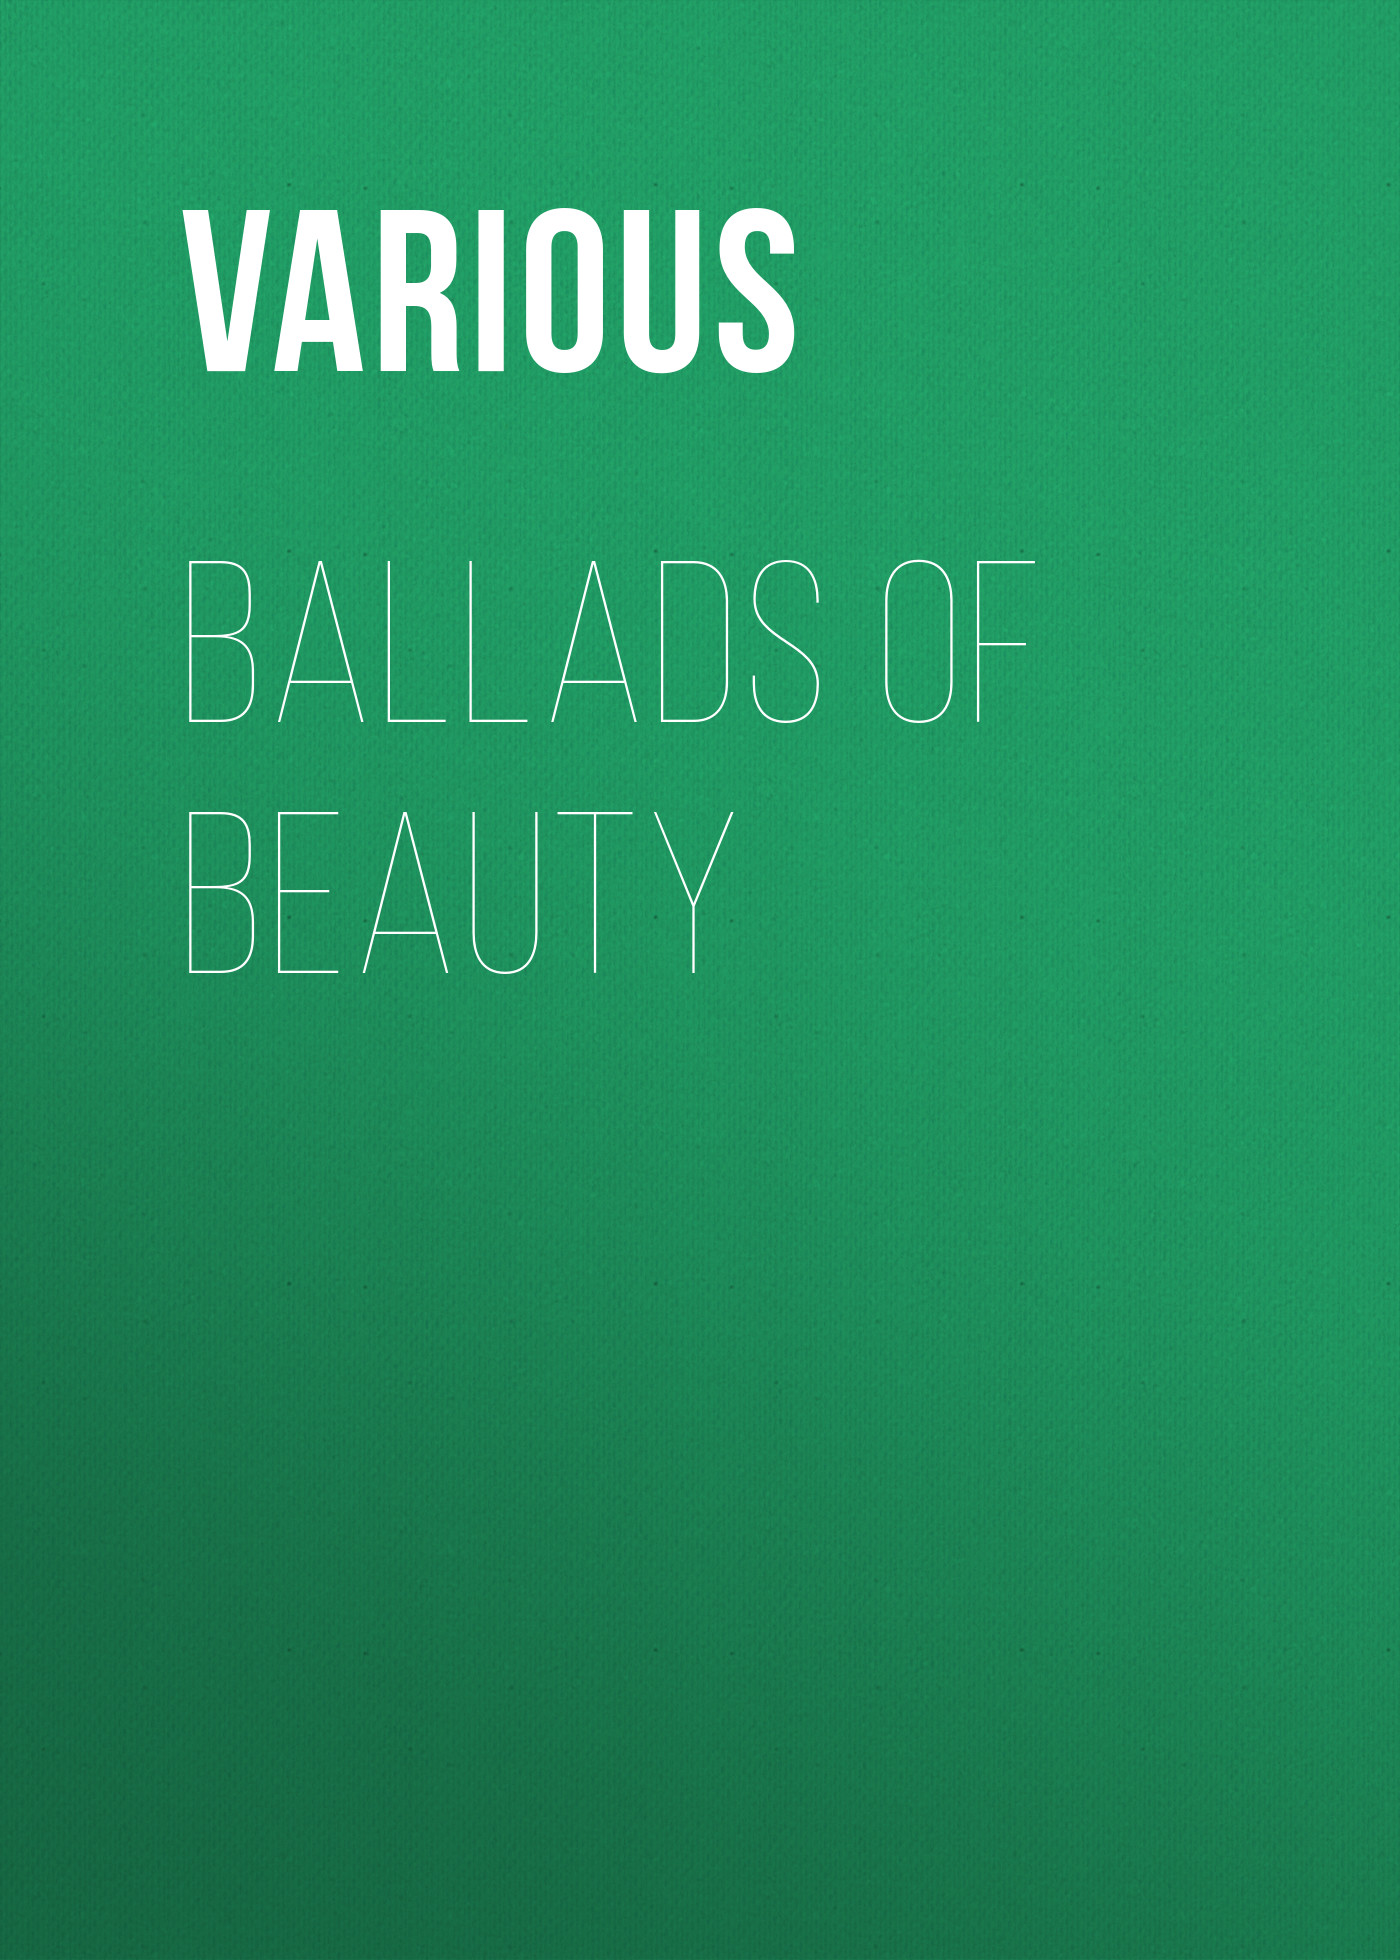 Various Ballads of Beauty various ballads of beauty